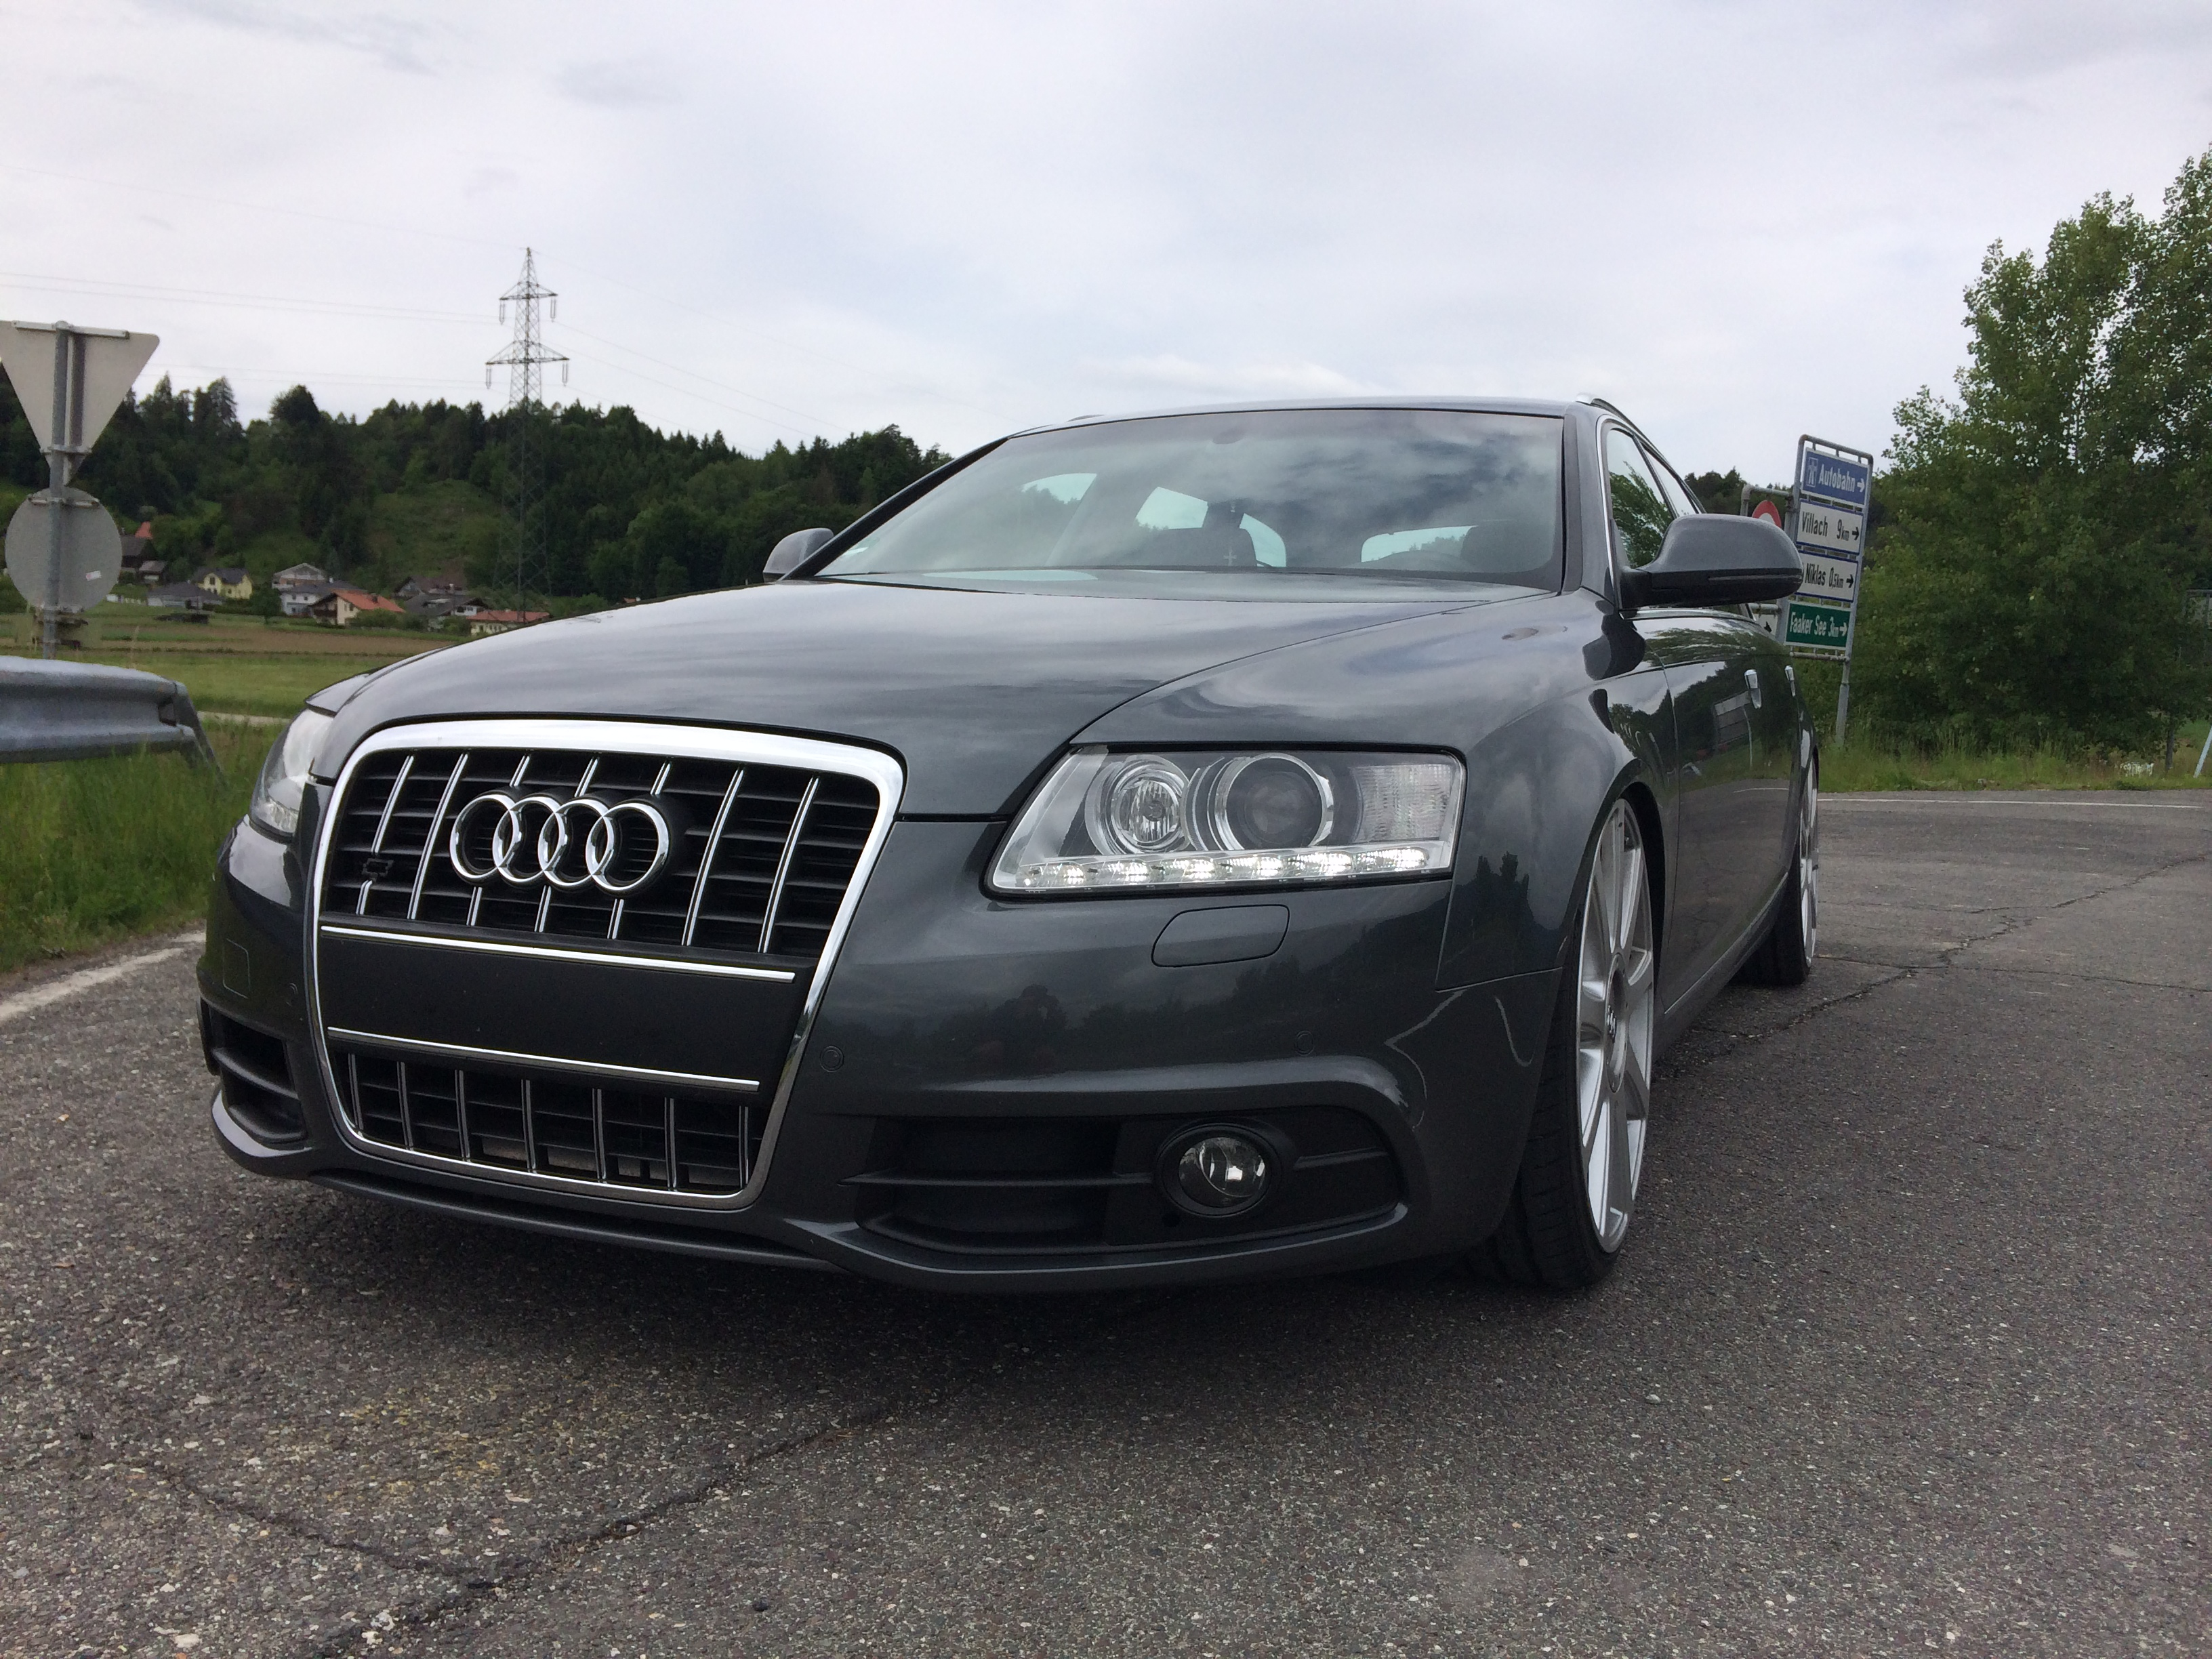 Audi A6 4f Avant Show And Shine Vw Page Forum Hilfestellung